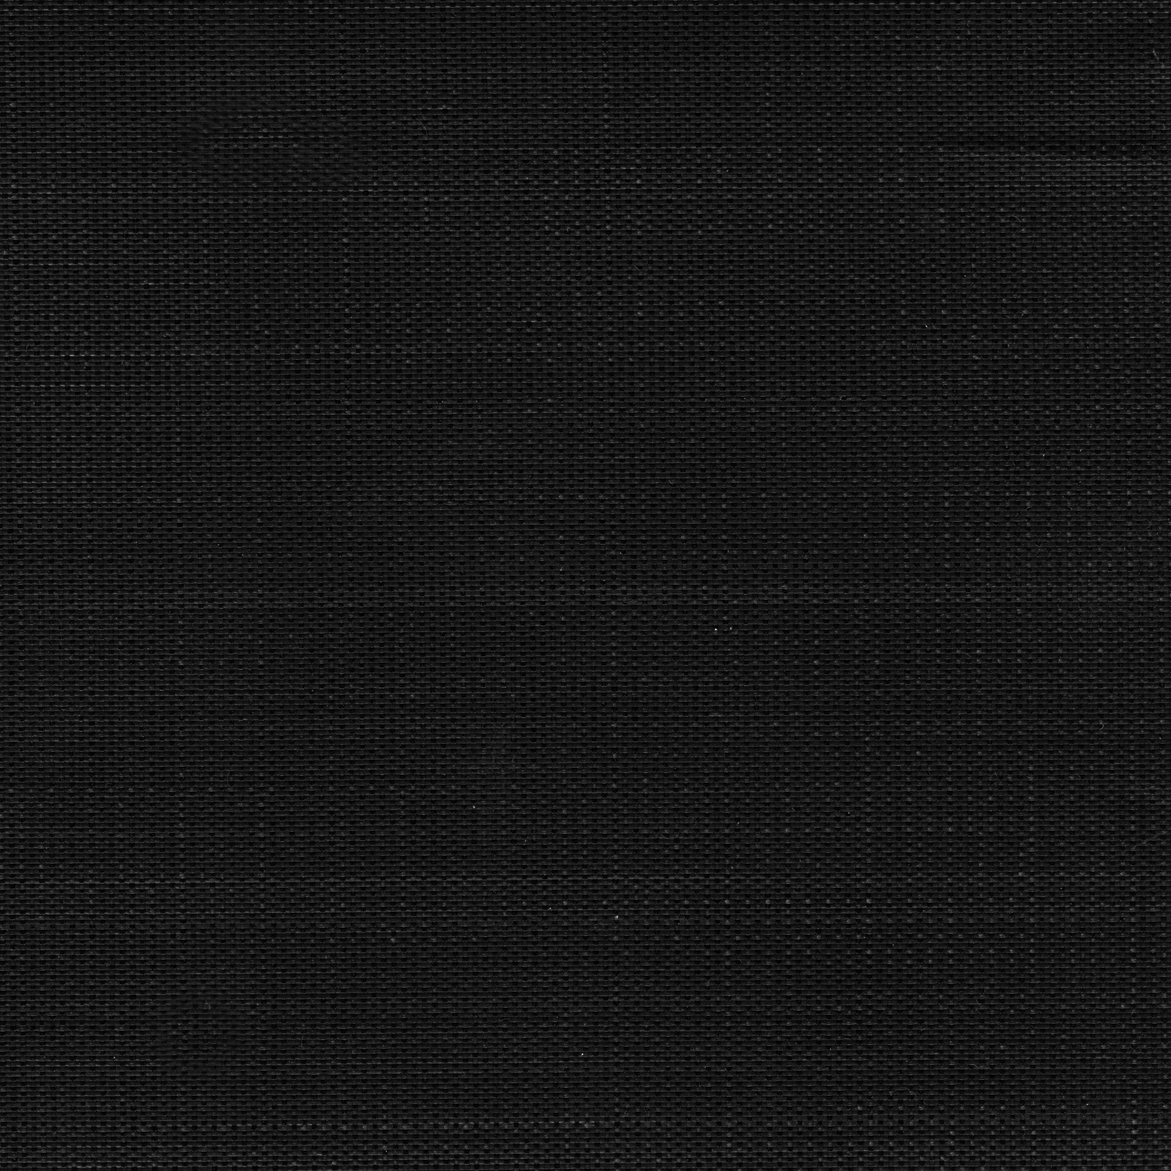 Polypropylene Solid Weave Mesh Windscreens & Tarps – Black (95% Shade); Size (ft.) 10 x 12